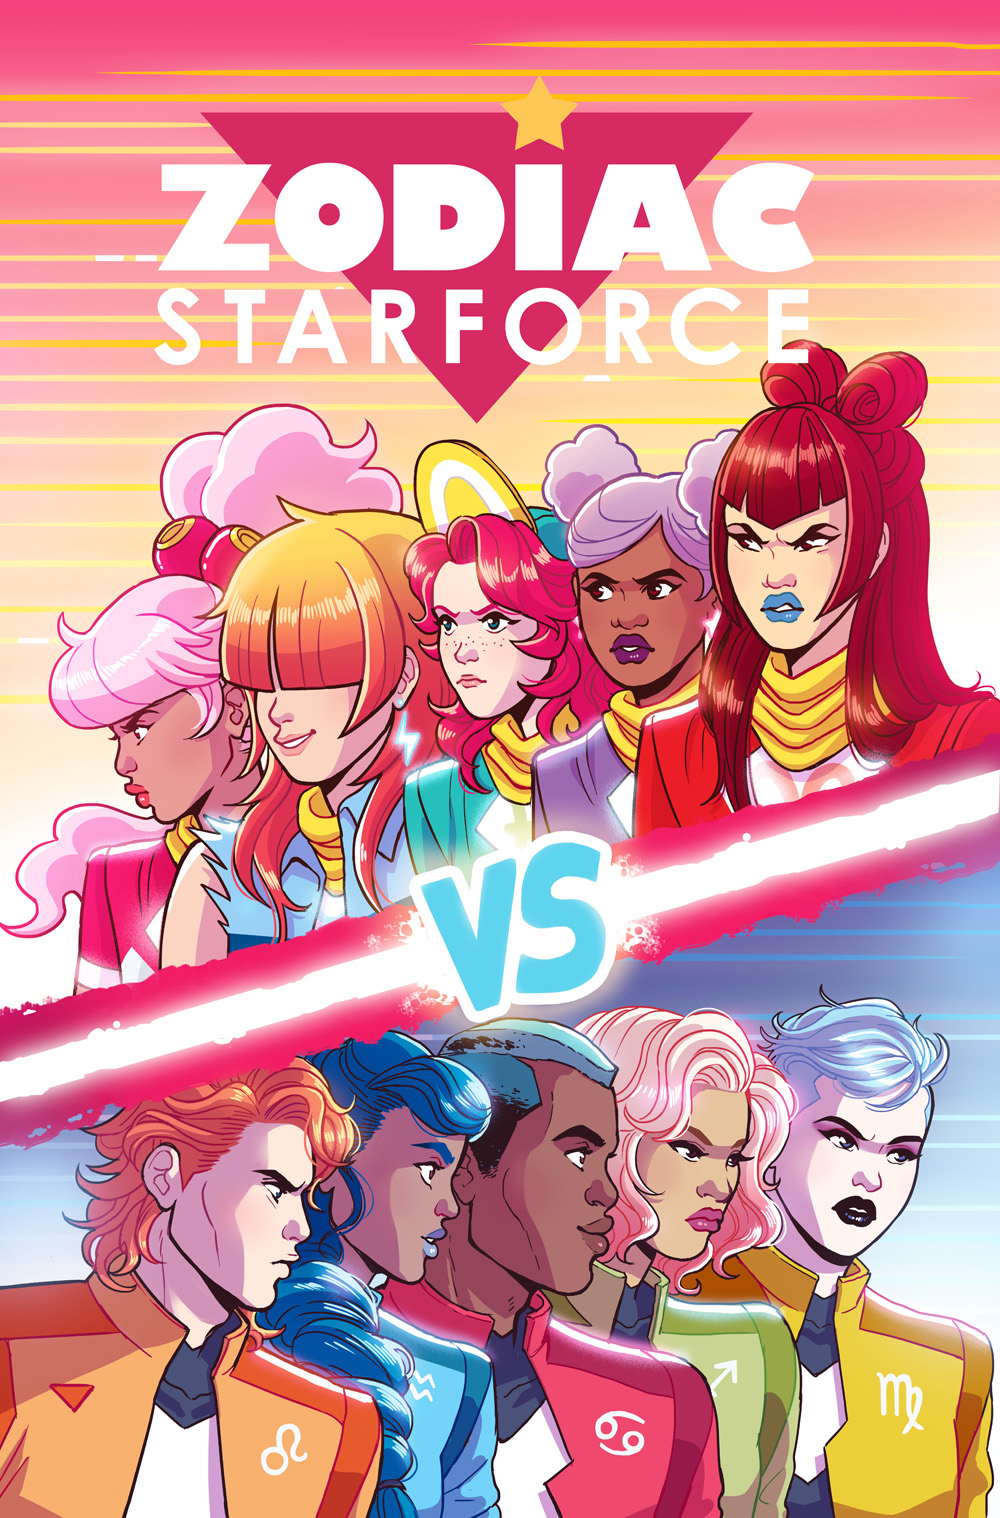 Zodiac Starforce: Cries of the Fire Prince #3 cover- Dark Horse comics